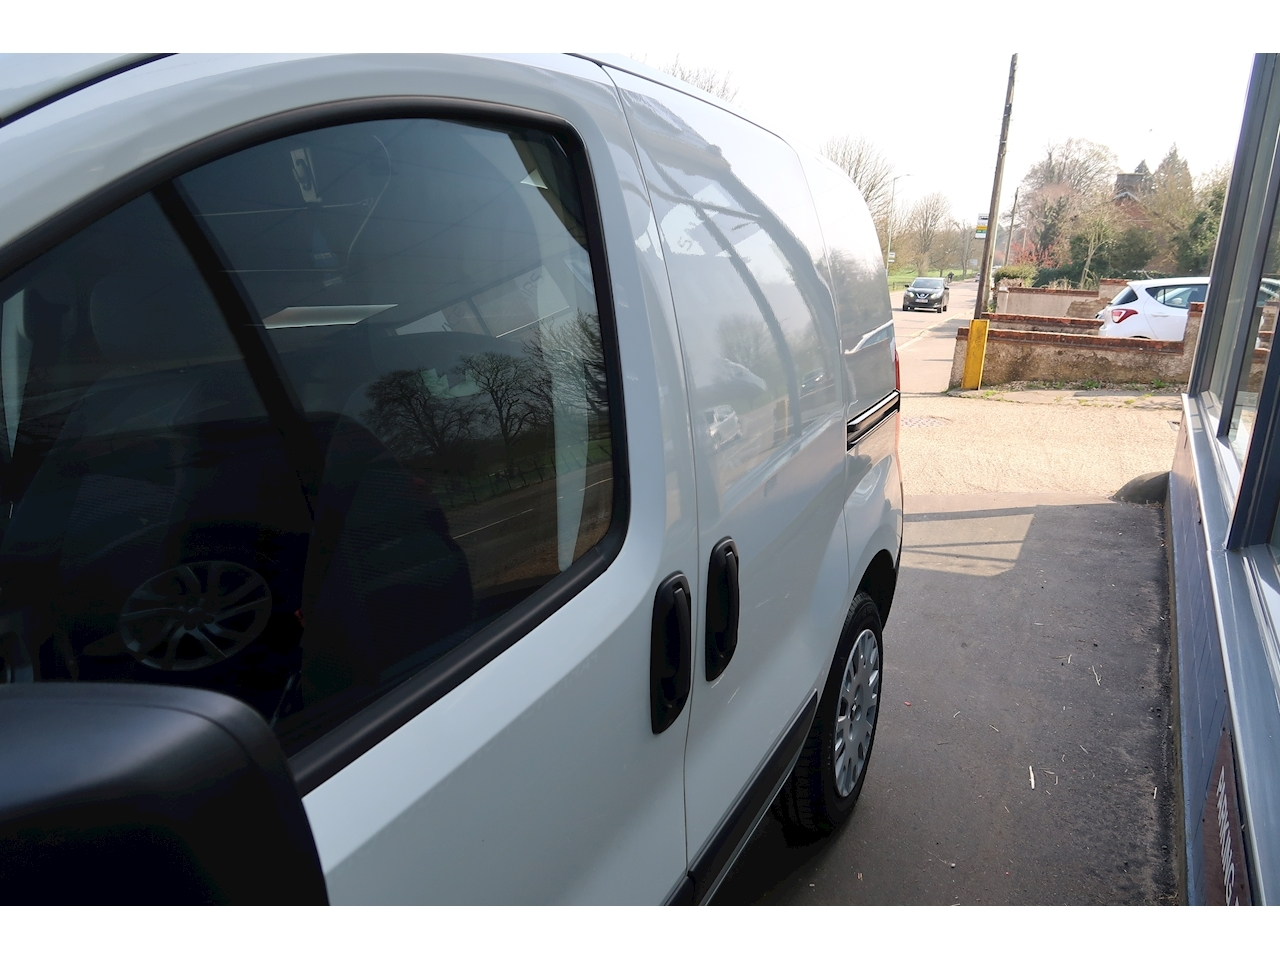 Nemo 590 Enterprise Hdi Panel Van 1.2 Manual Diesel